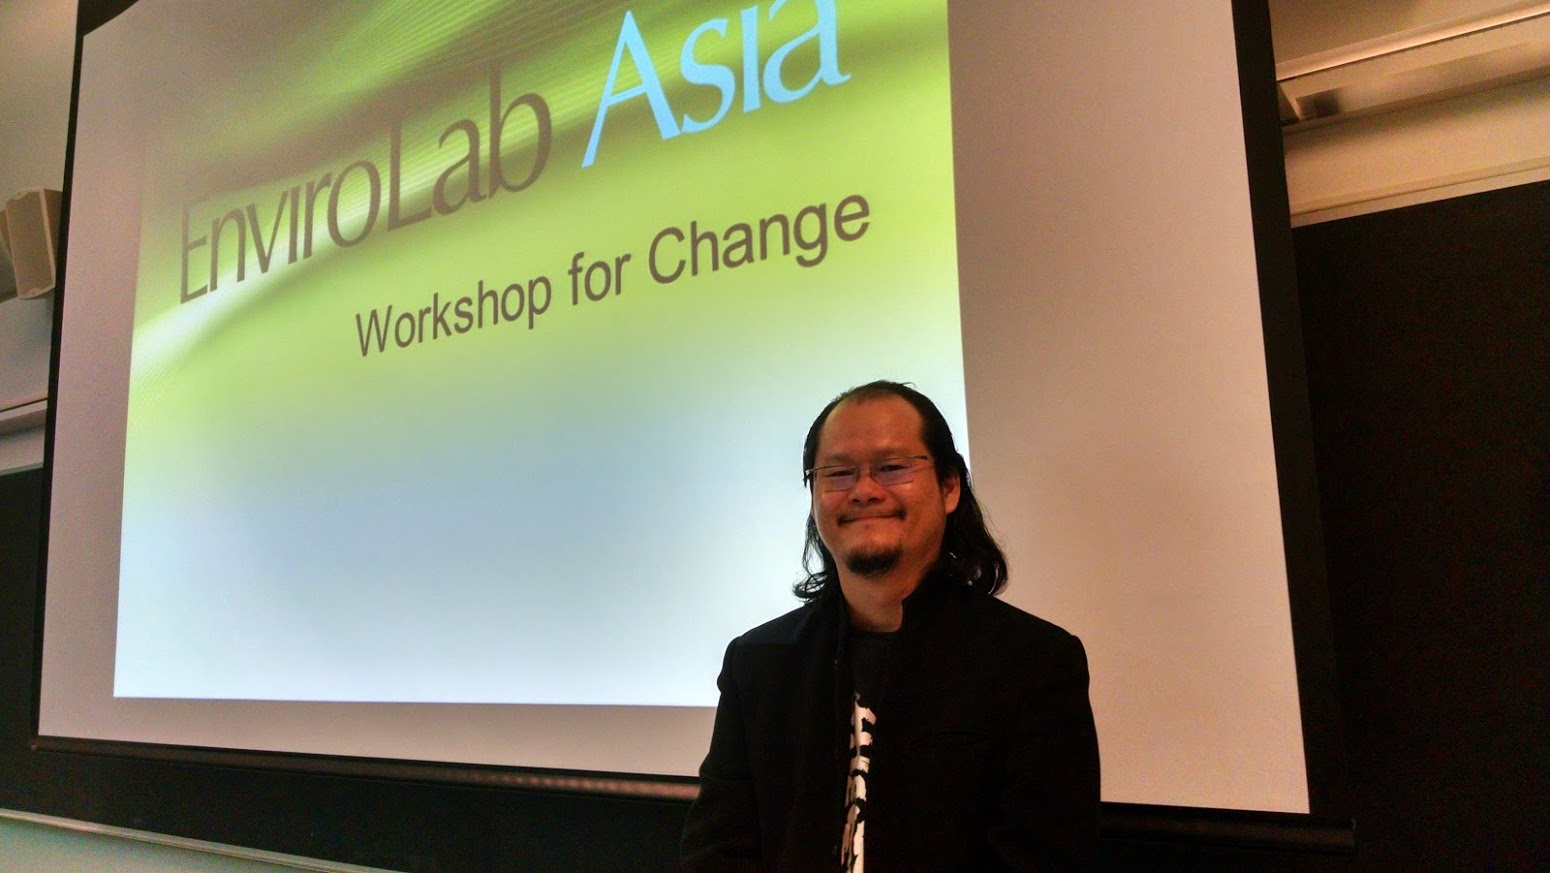 EnviroLab Asia sheds light on environmental destruction